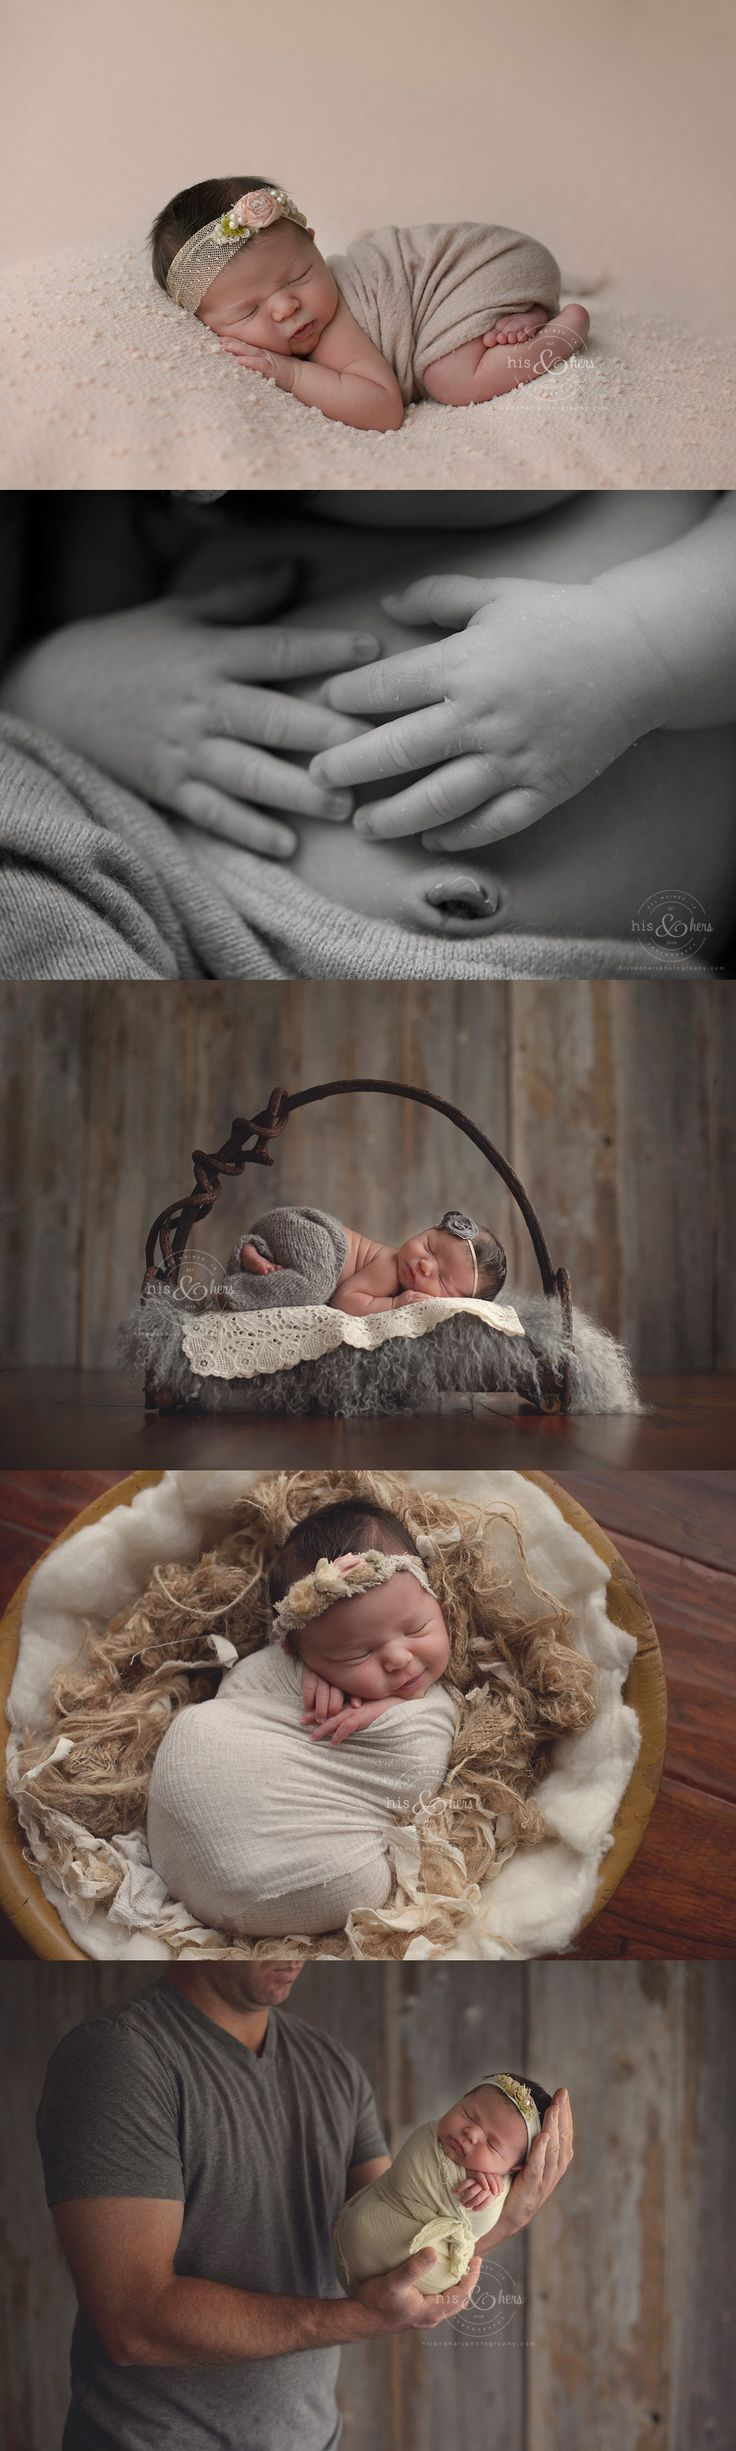 10 day old Josie | Des Moines, Iowa newborn photographer, Darcy Milder | His & Hers